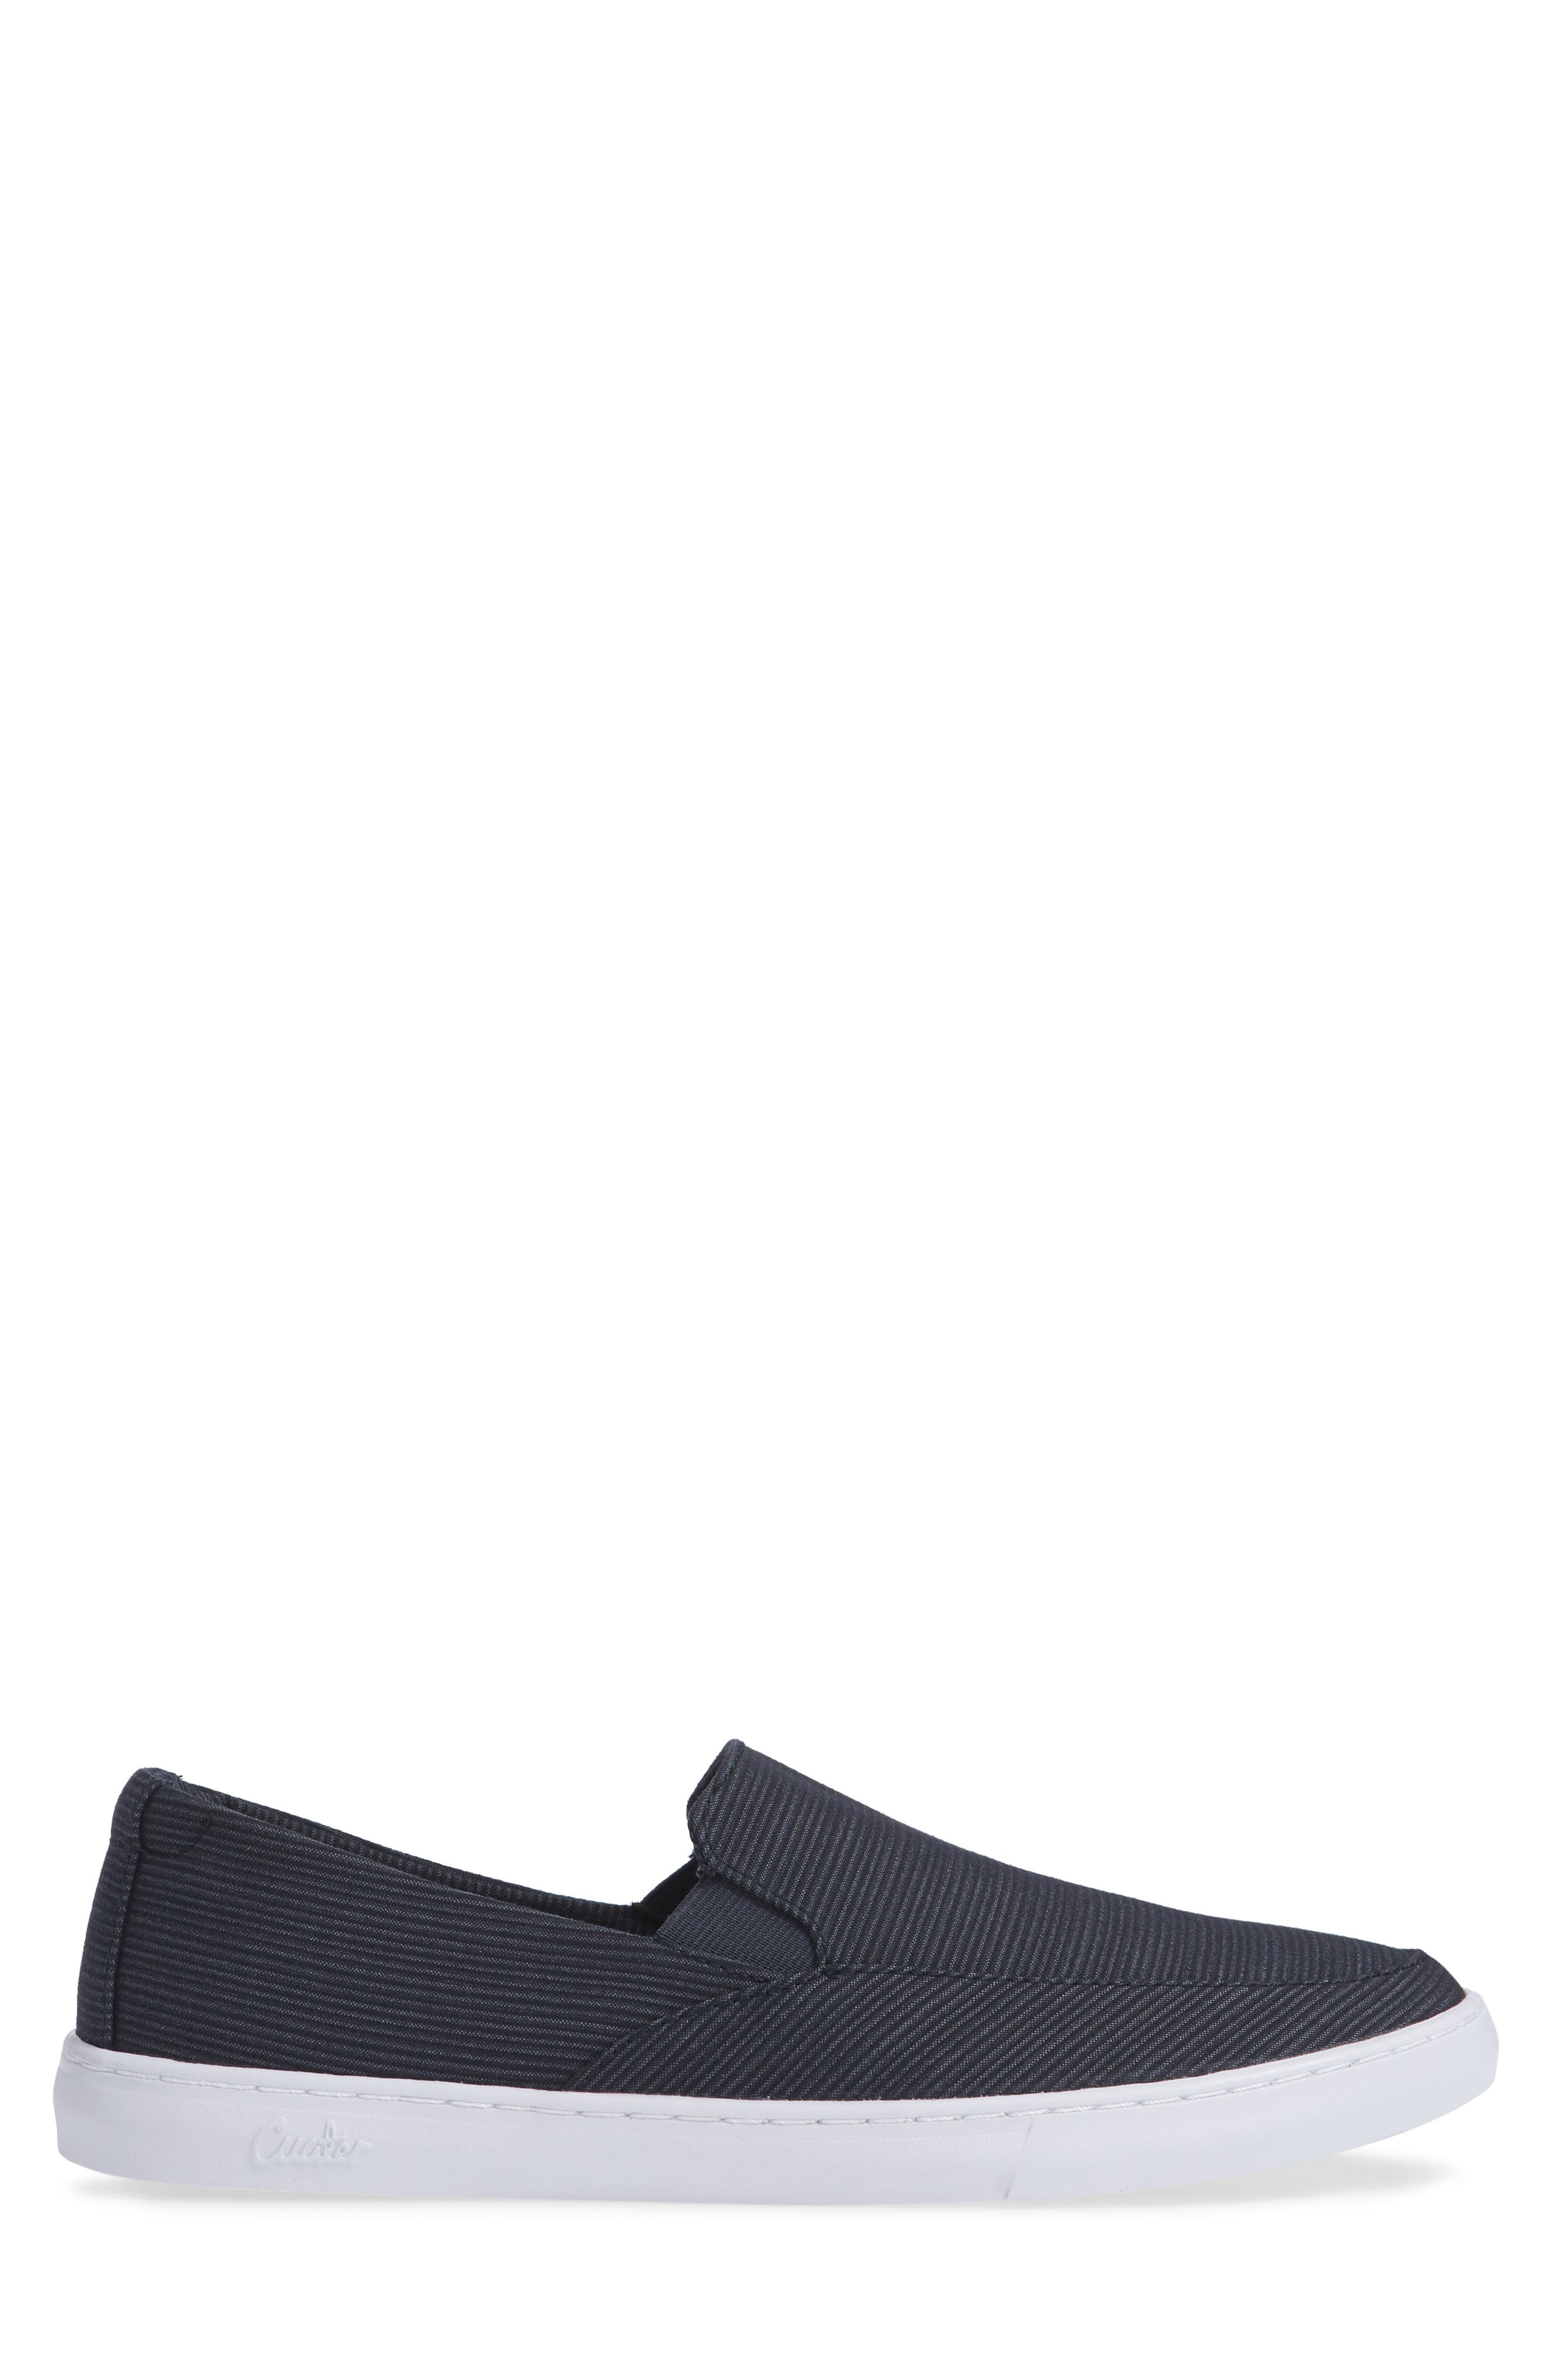 Cuater by Travis Mathew  Tracers Slip-On Sneaker,                             Alternate thumbnail 3, color,                             BLUE NIGHTS